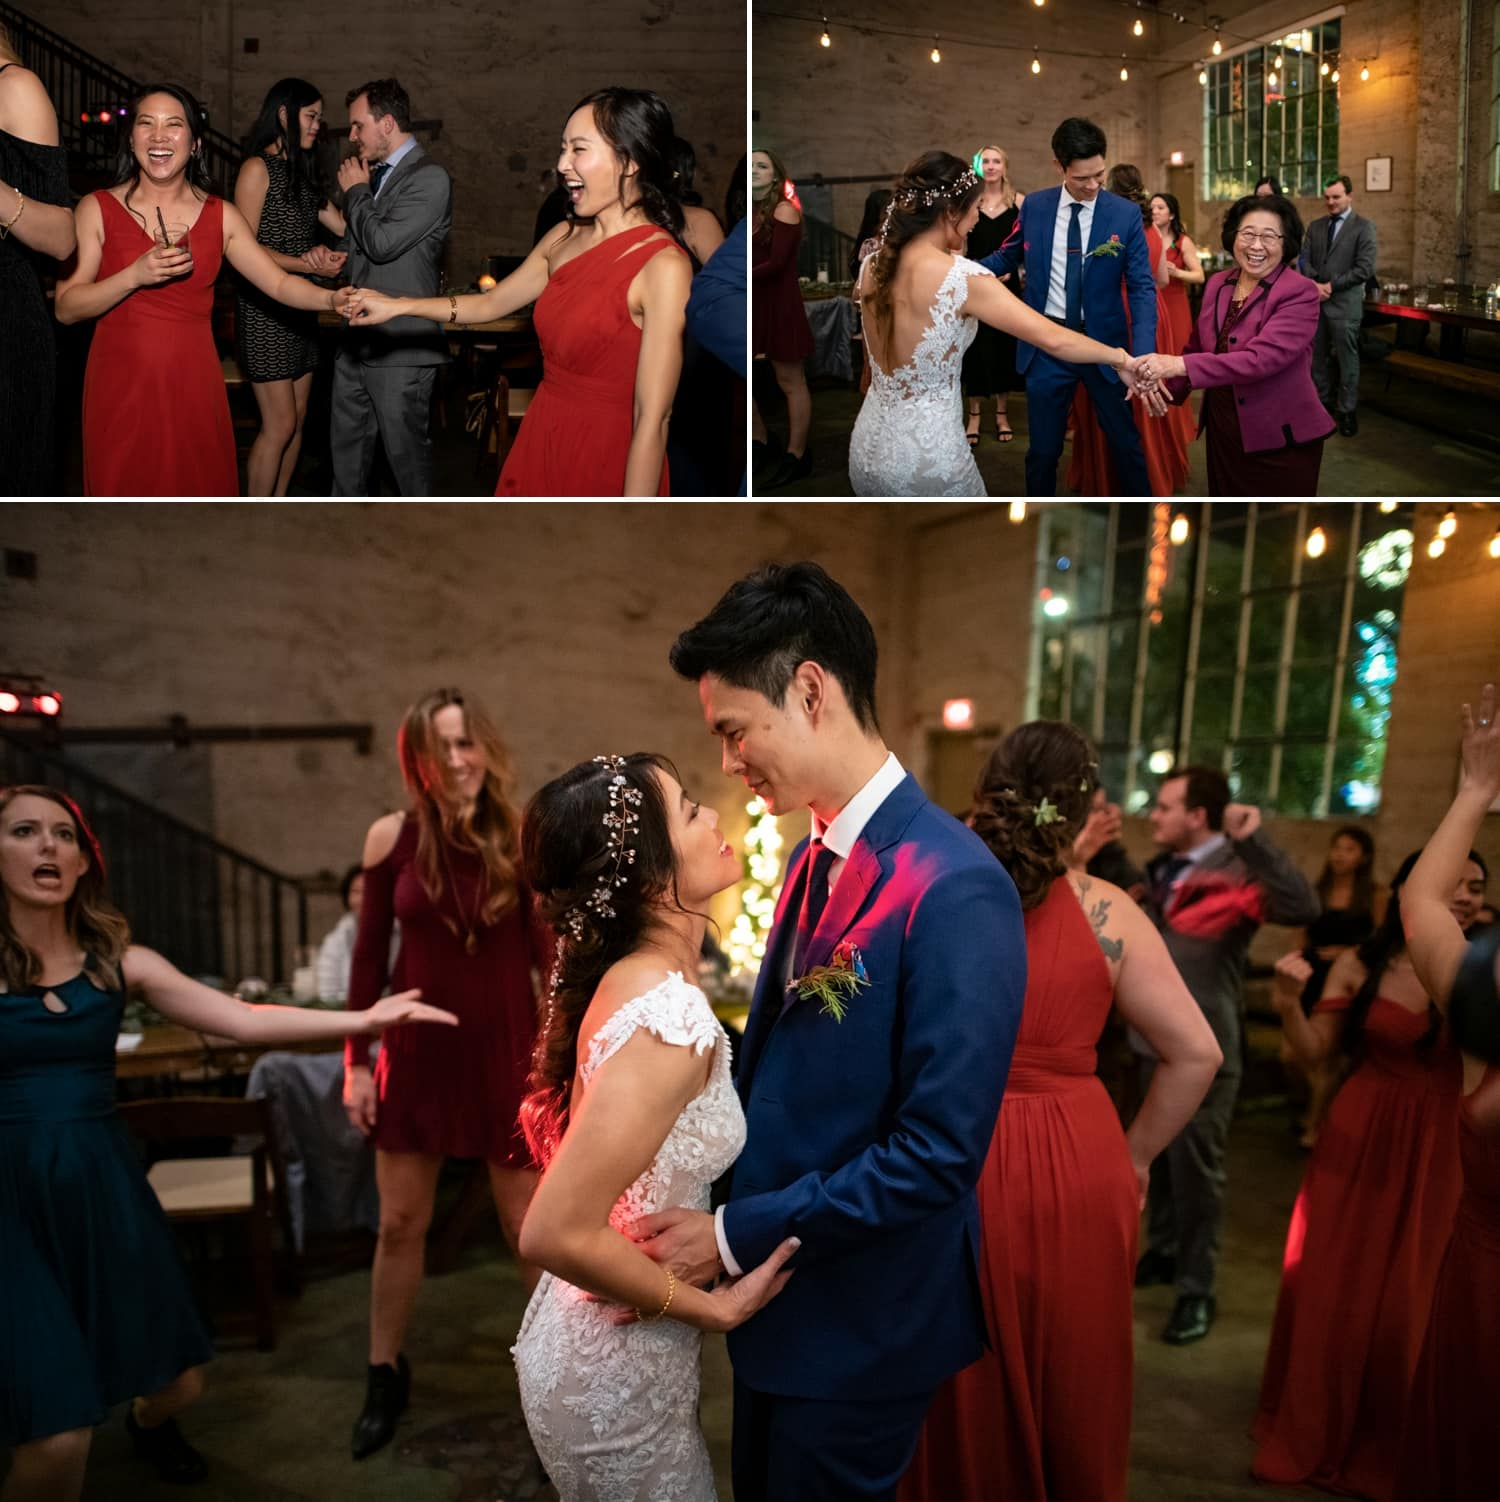 People dancing at a Luce Loft wedding in San Diego.